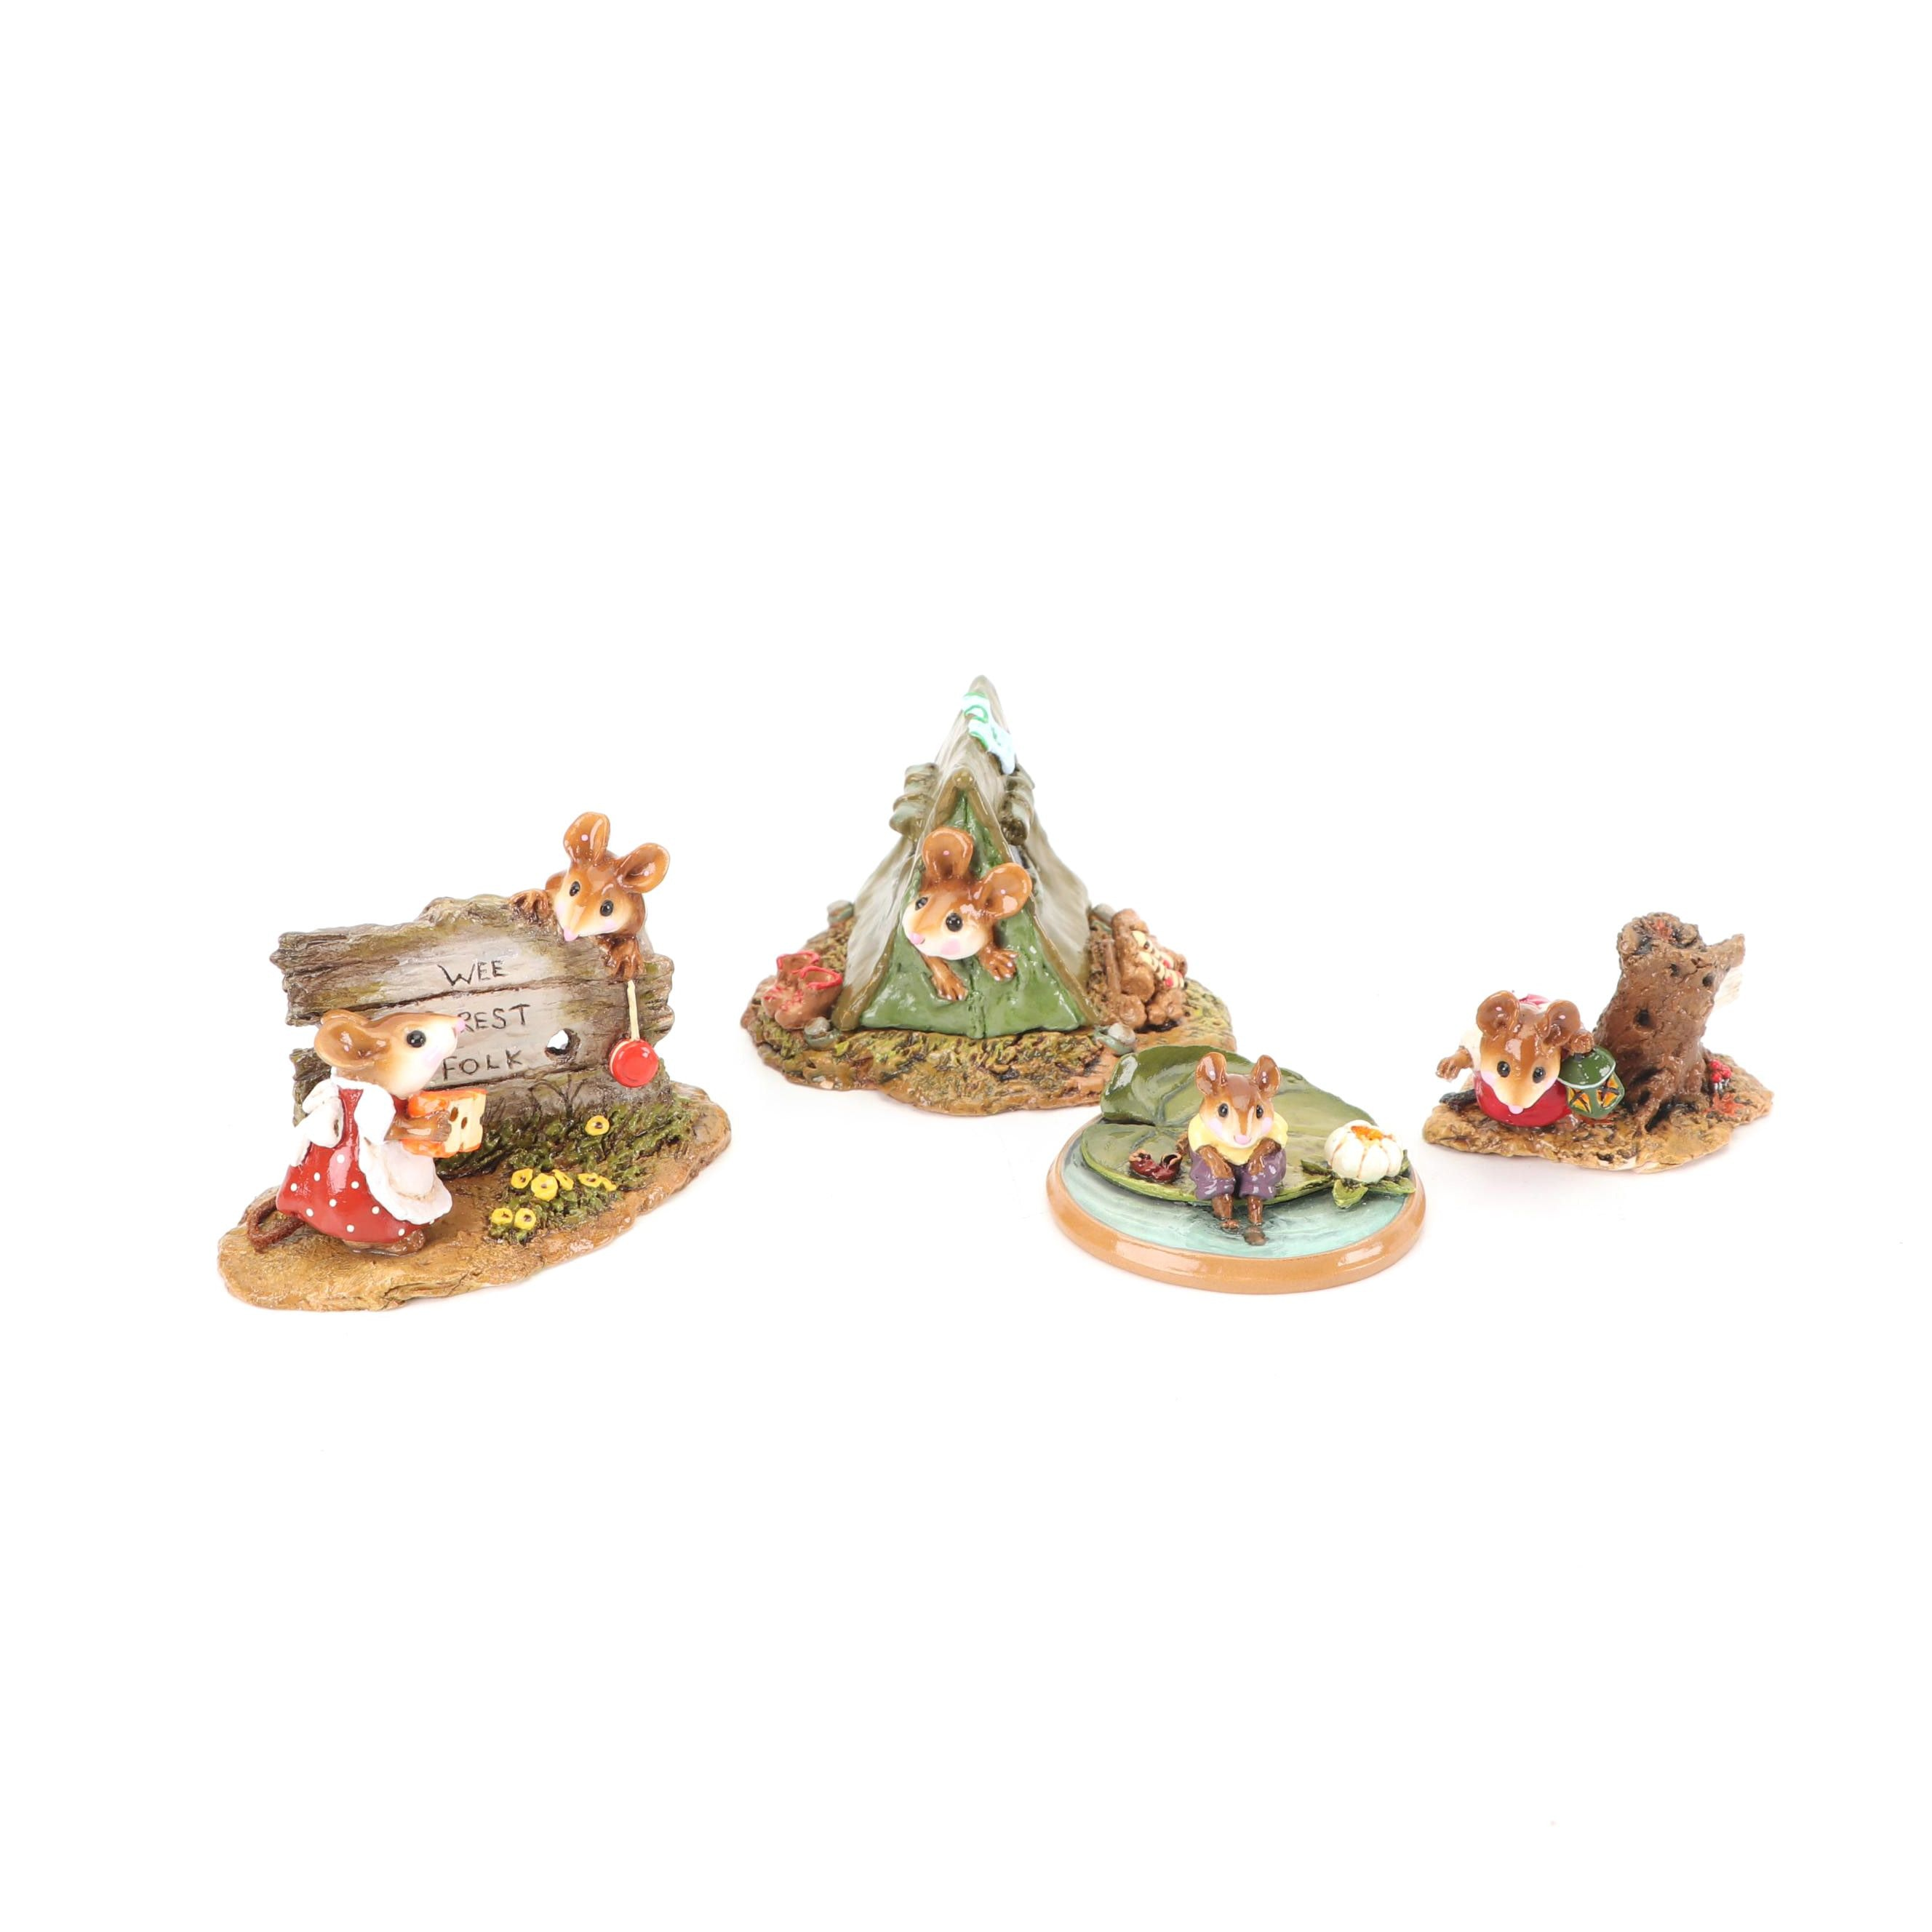 """""""Wee Forest Folk"""" Figurines by Annette, Donna, and William Peterson"""